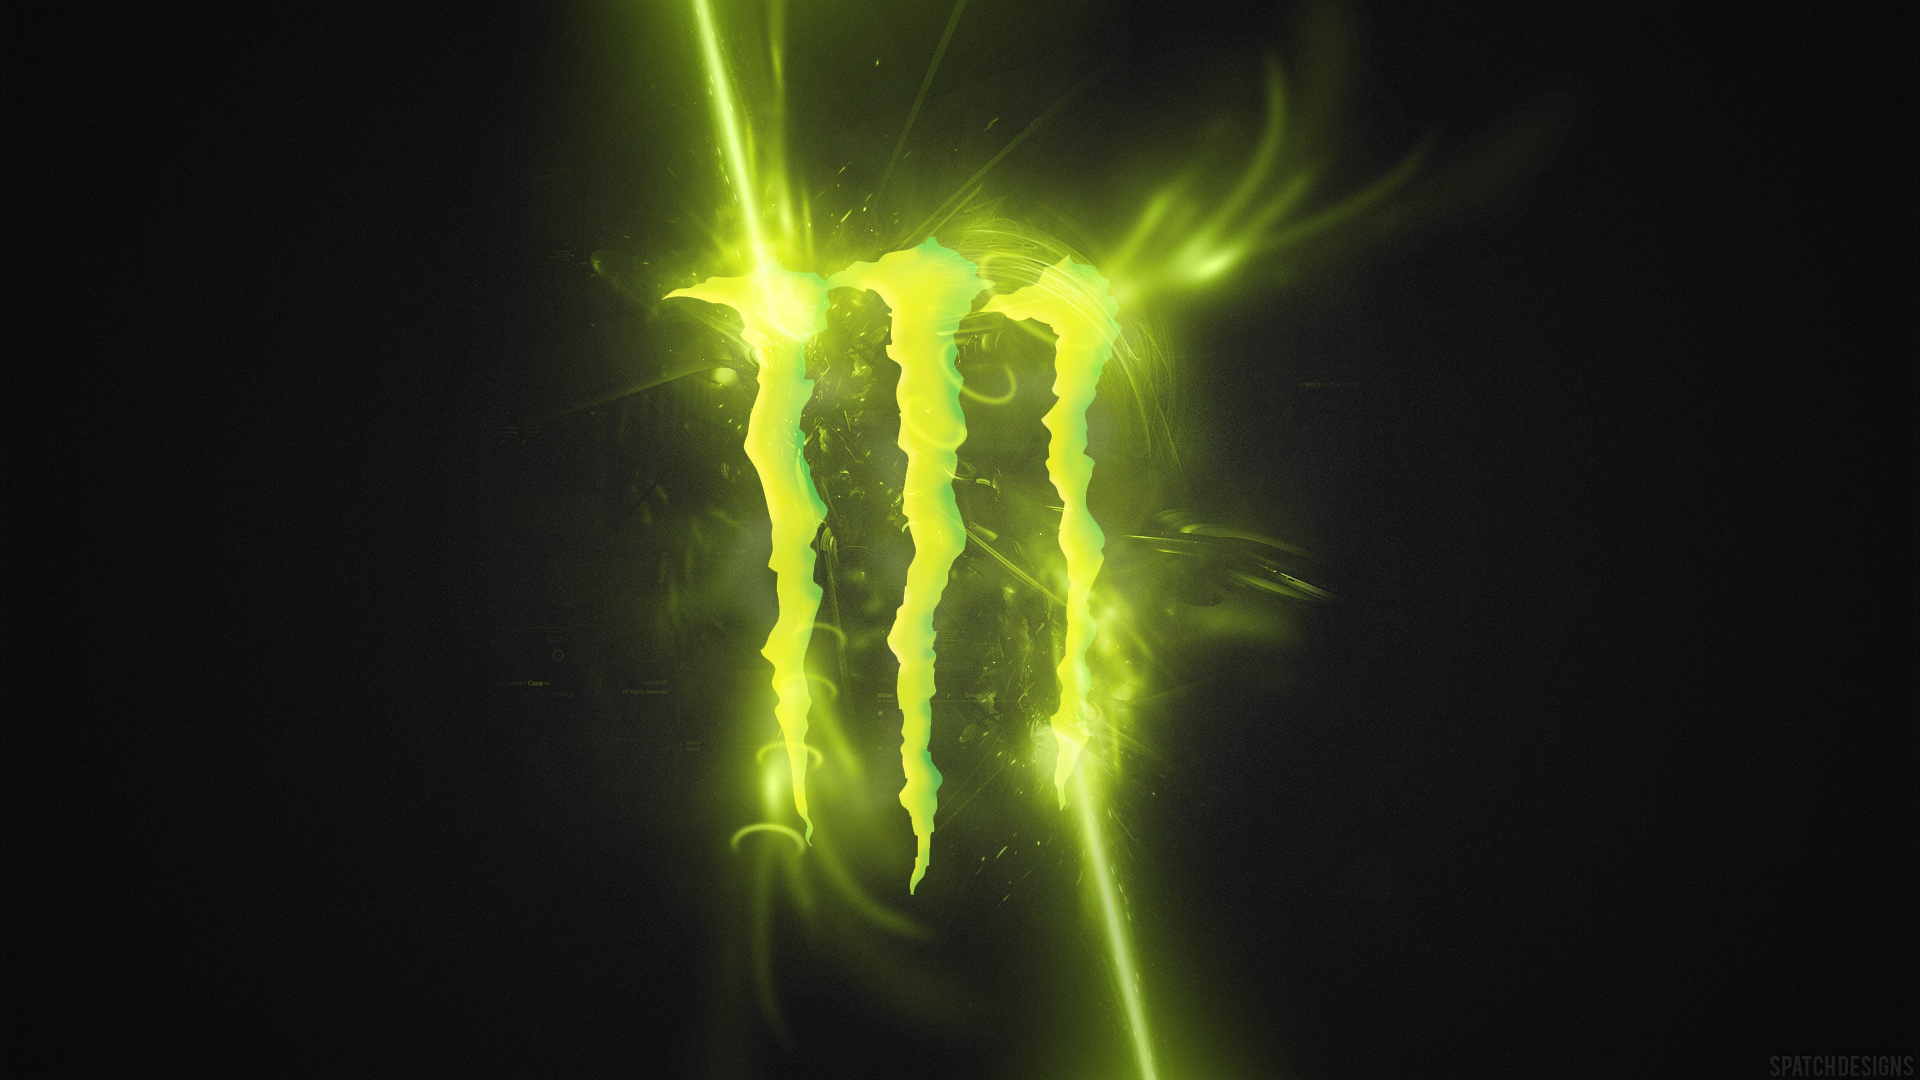 Monster Energy 03 HD Wallpaper Beautiful Monster Energy Logo HD 1920x1080